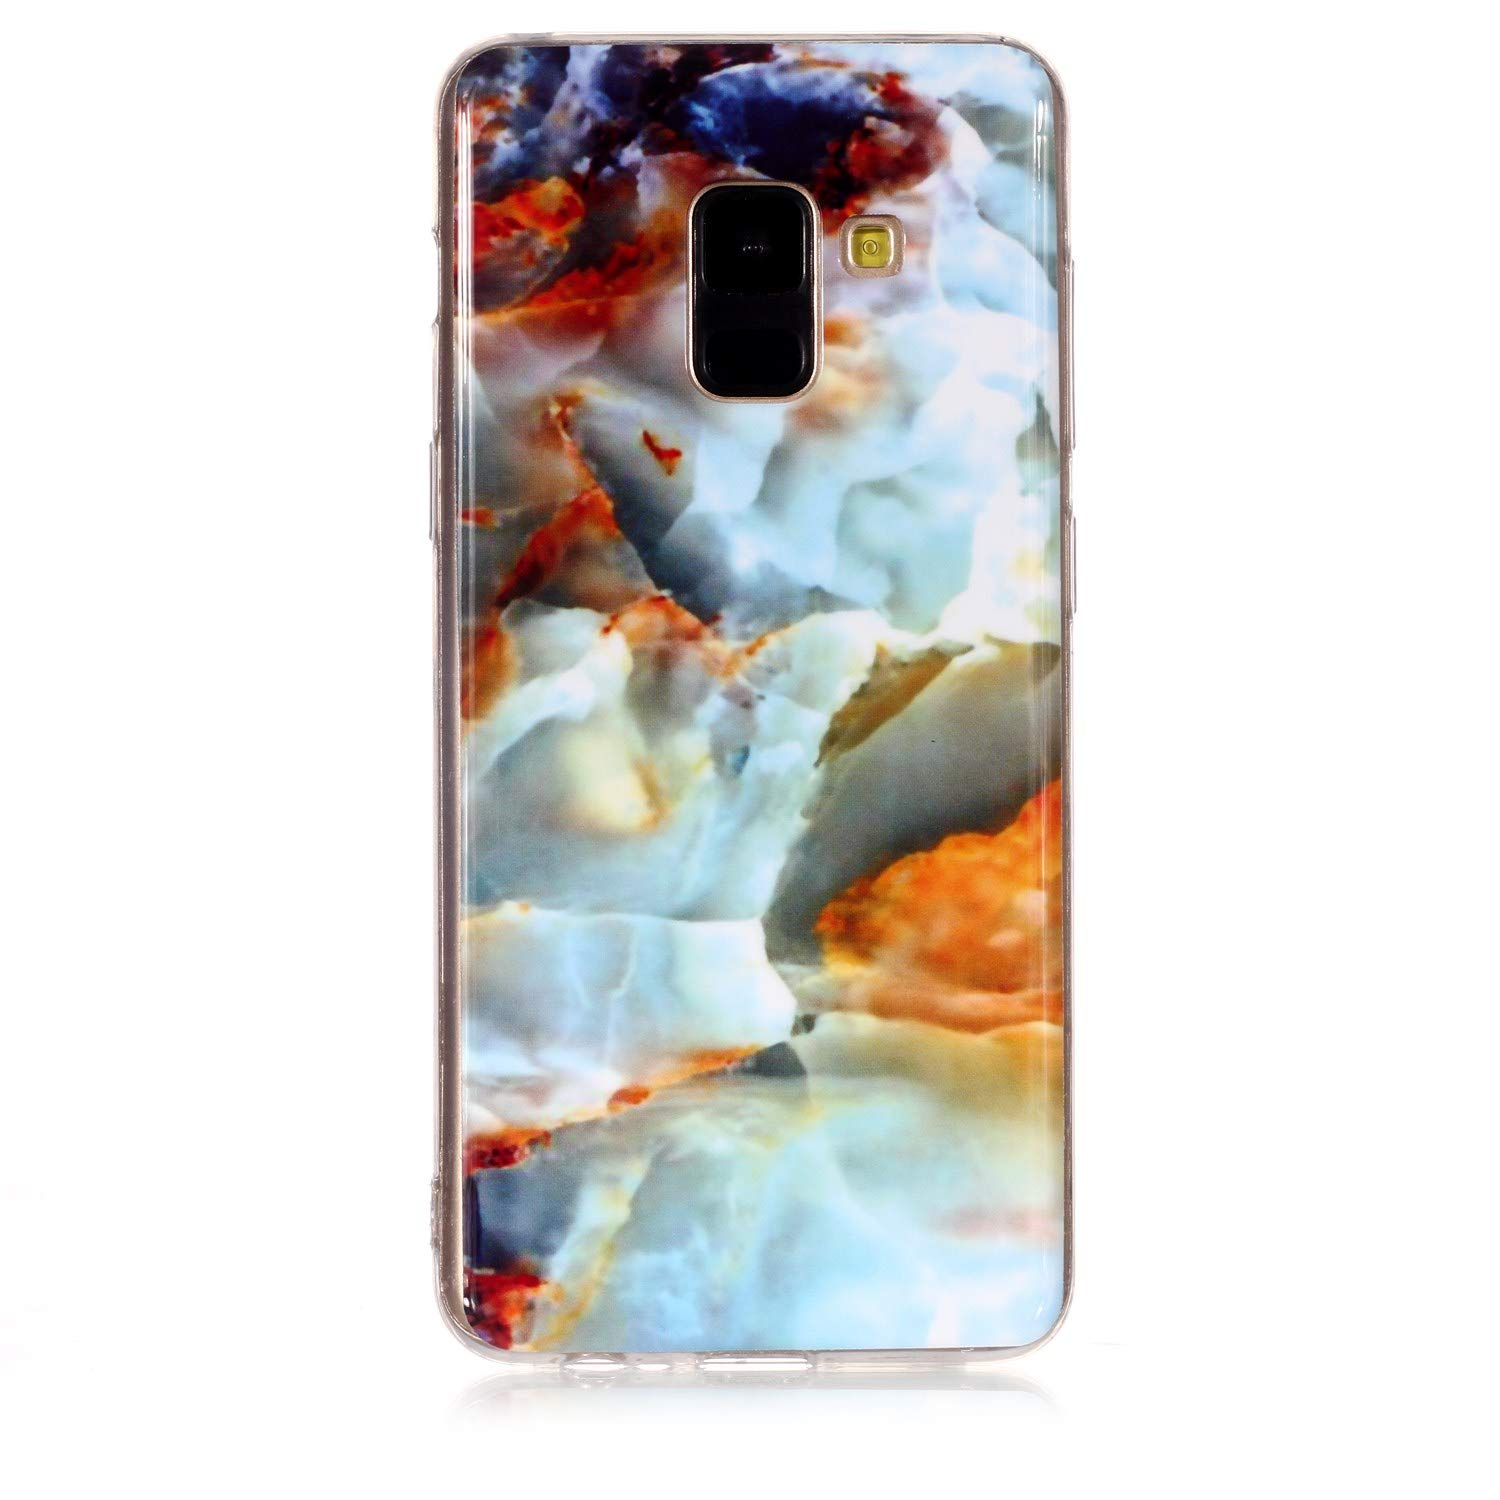 for Samsung Galaxy A6 2018 Marble Case with Screen Protector,Unique Pattern Design Skin Ultra Thin Slim Fit Soft Gel Silicone Case,QFFUN Shockproof Anti-Scratch Protective Back Cover - Fire Cloud by QFFUN (Image #2)